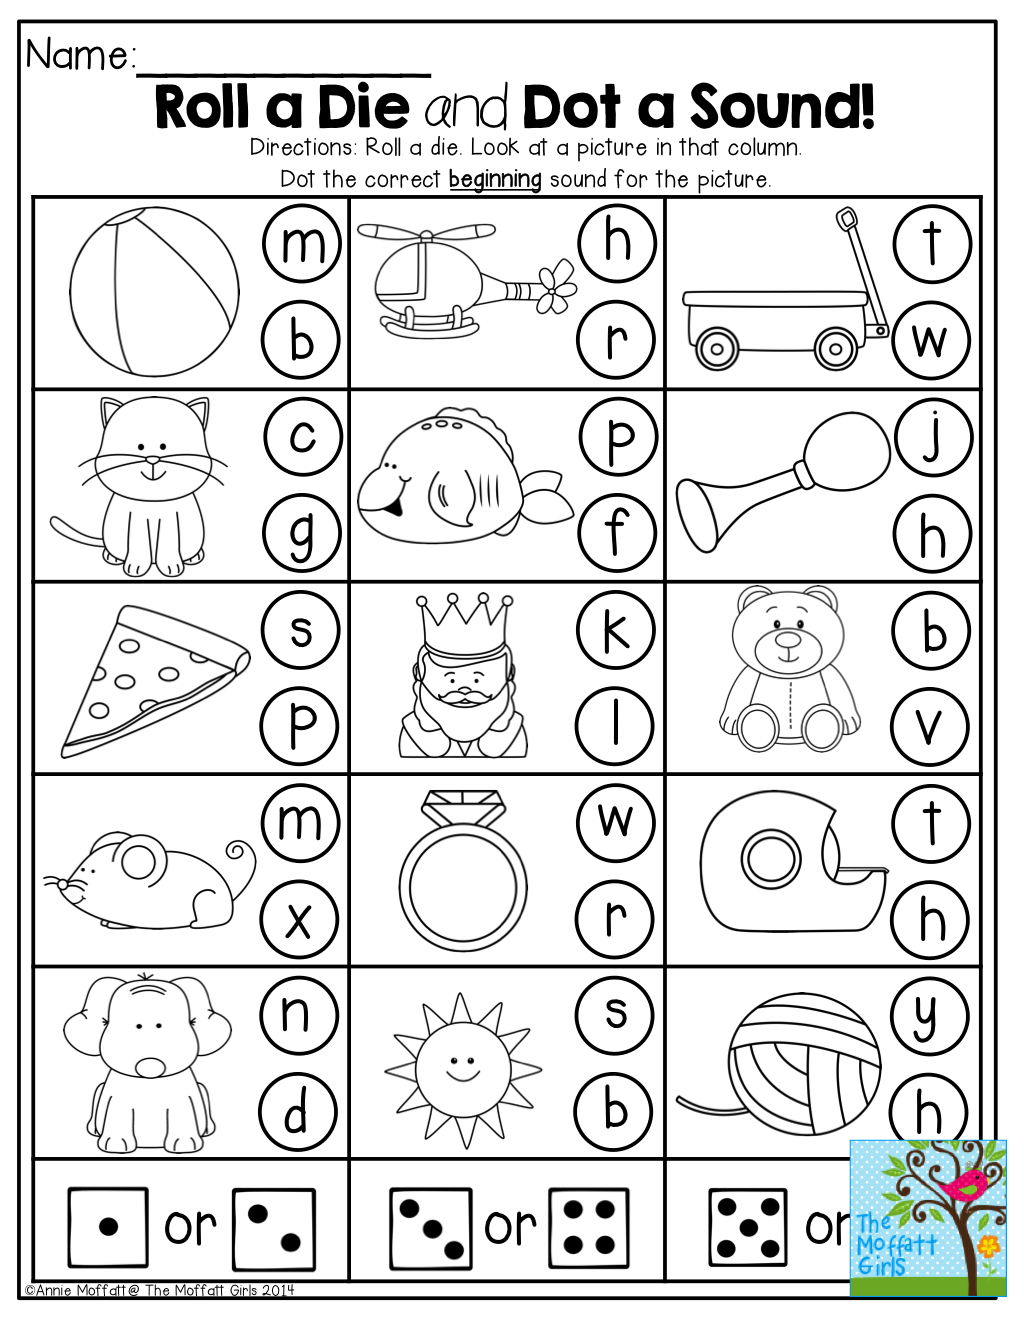 Roll A Die And Dot Or Color A Sound Fun And Interactive Activities For Back To School Phonics Kindergarten Kindergarten Learning Preschool Learning [ 1325 x 1024 Pixel ]